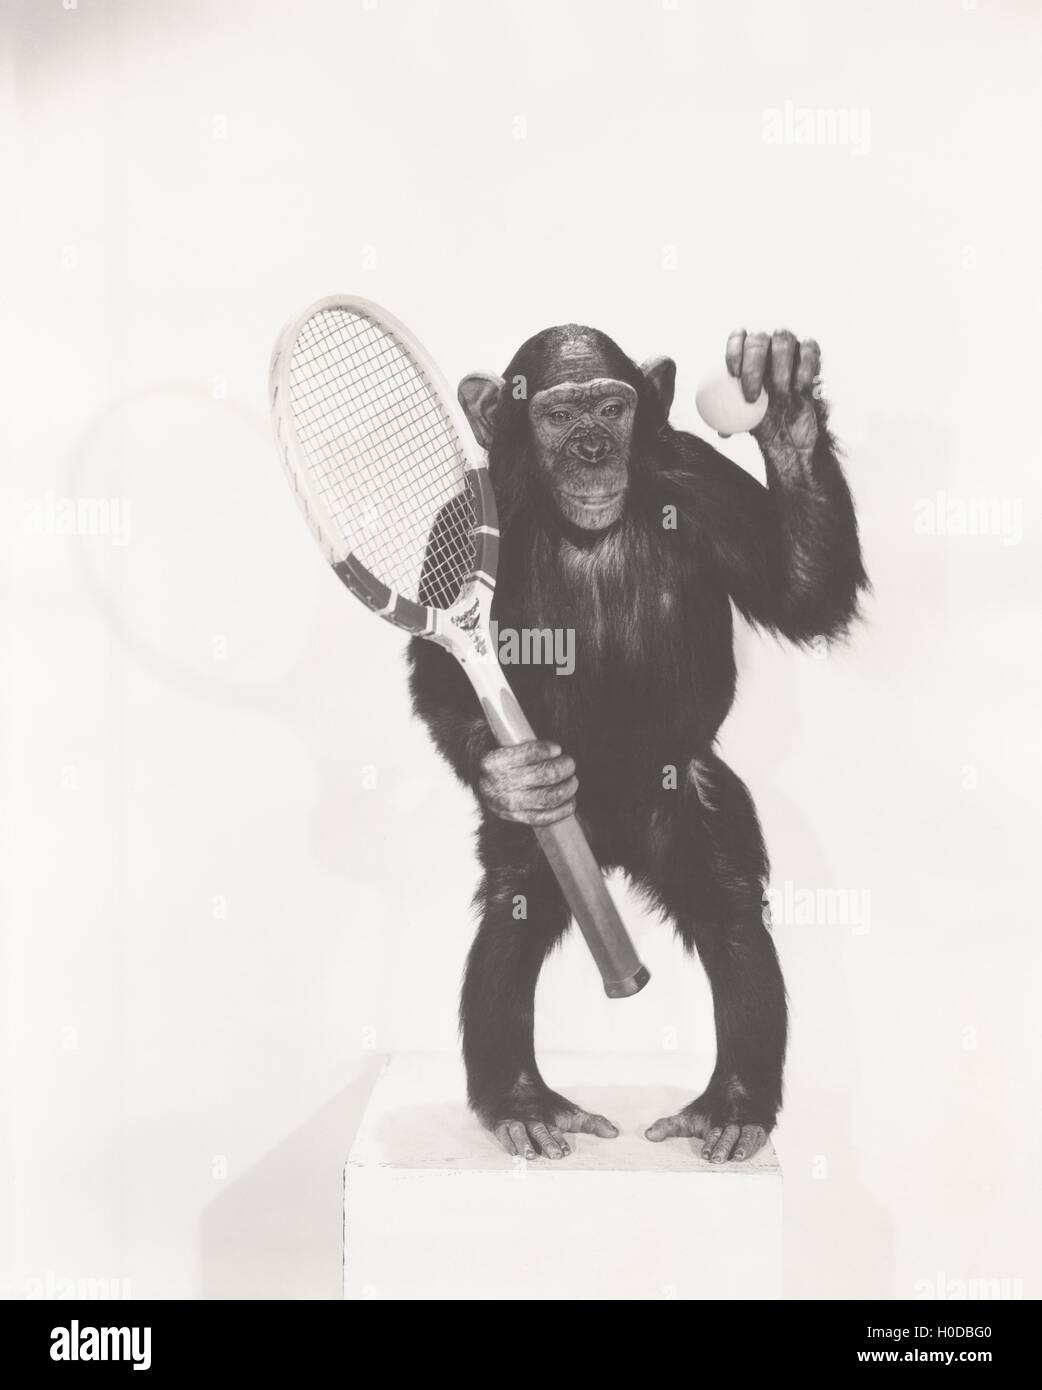 Monkey holding a tennis racket and ball - Stock Image